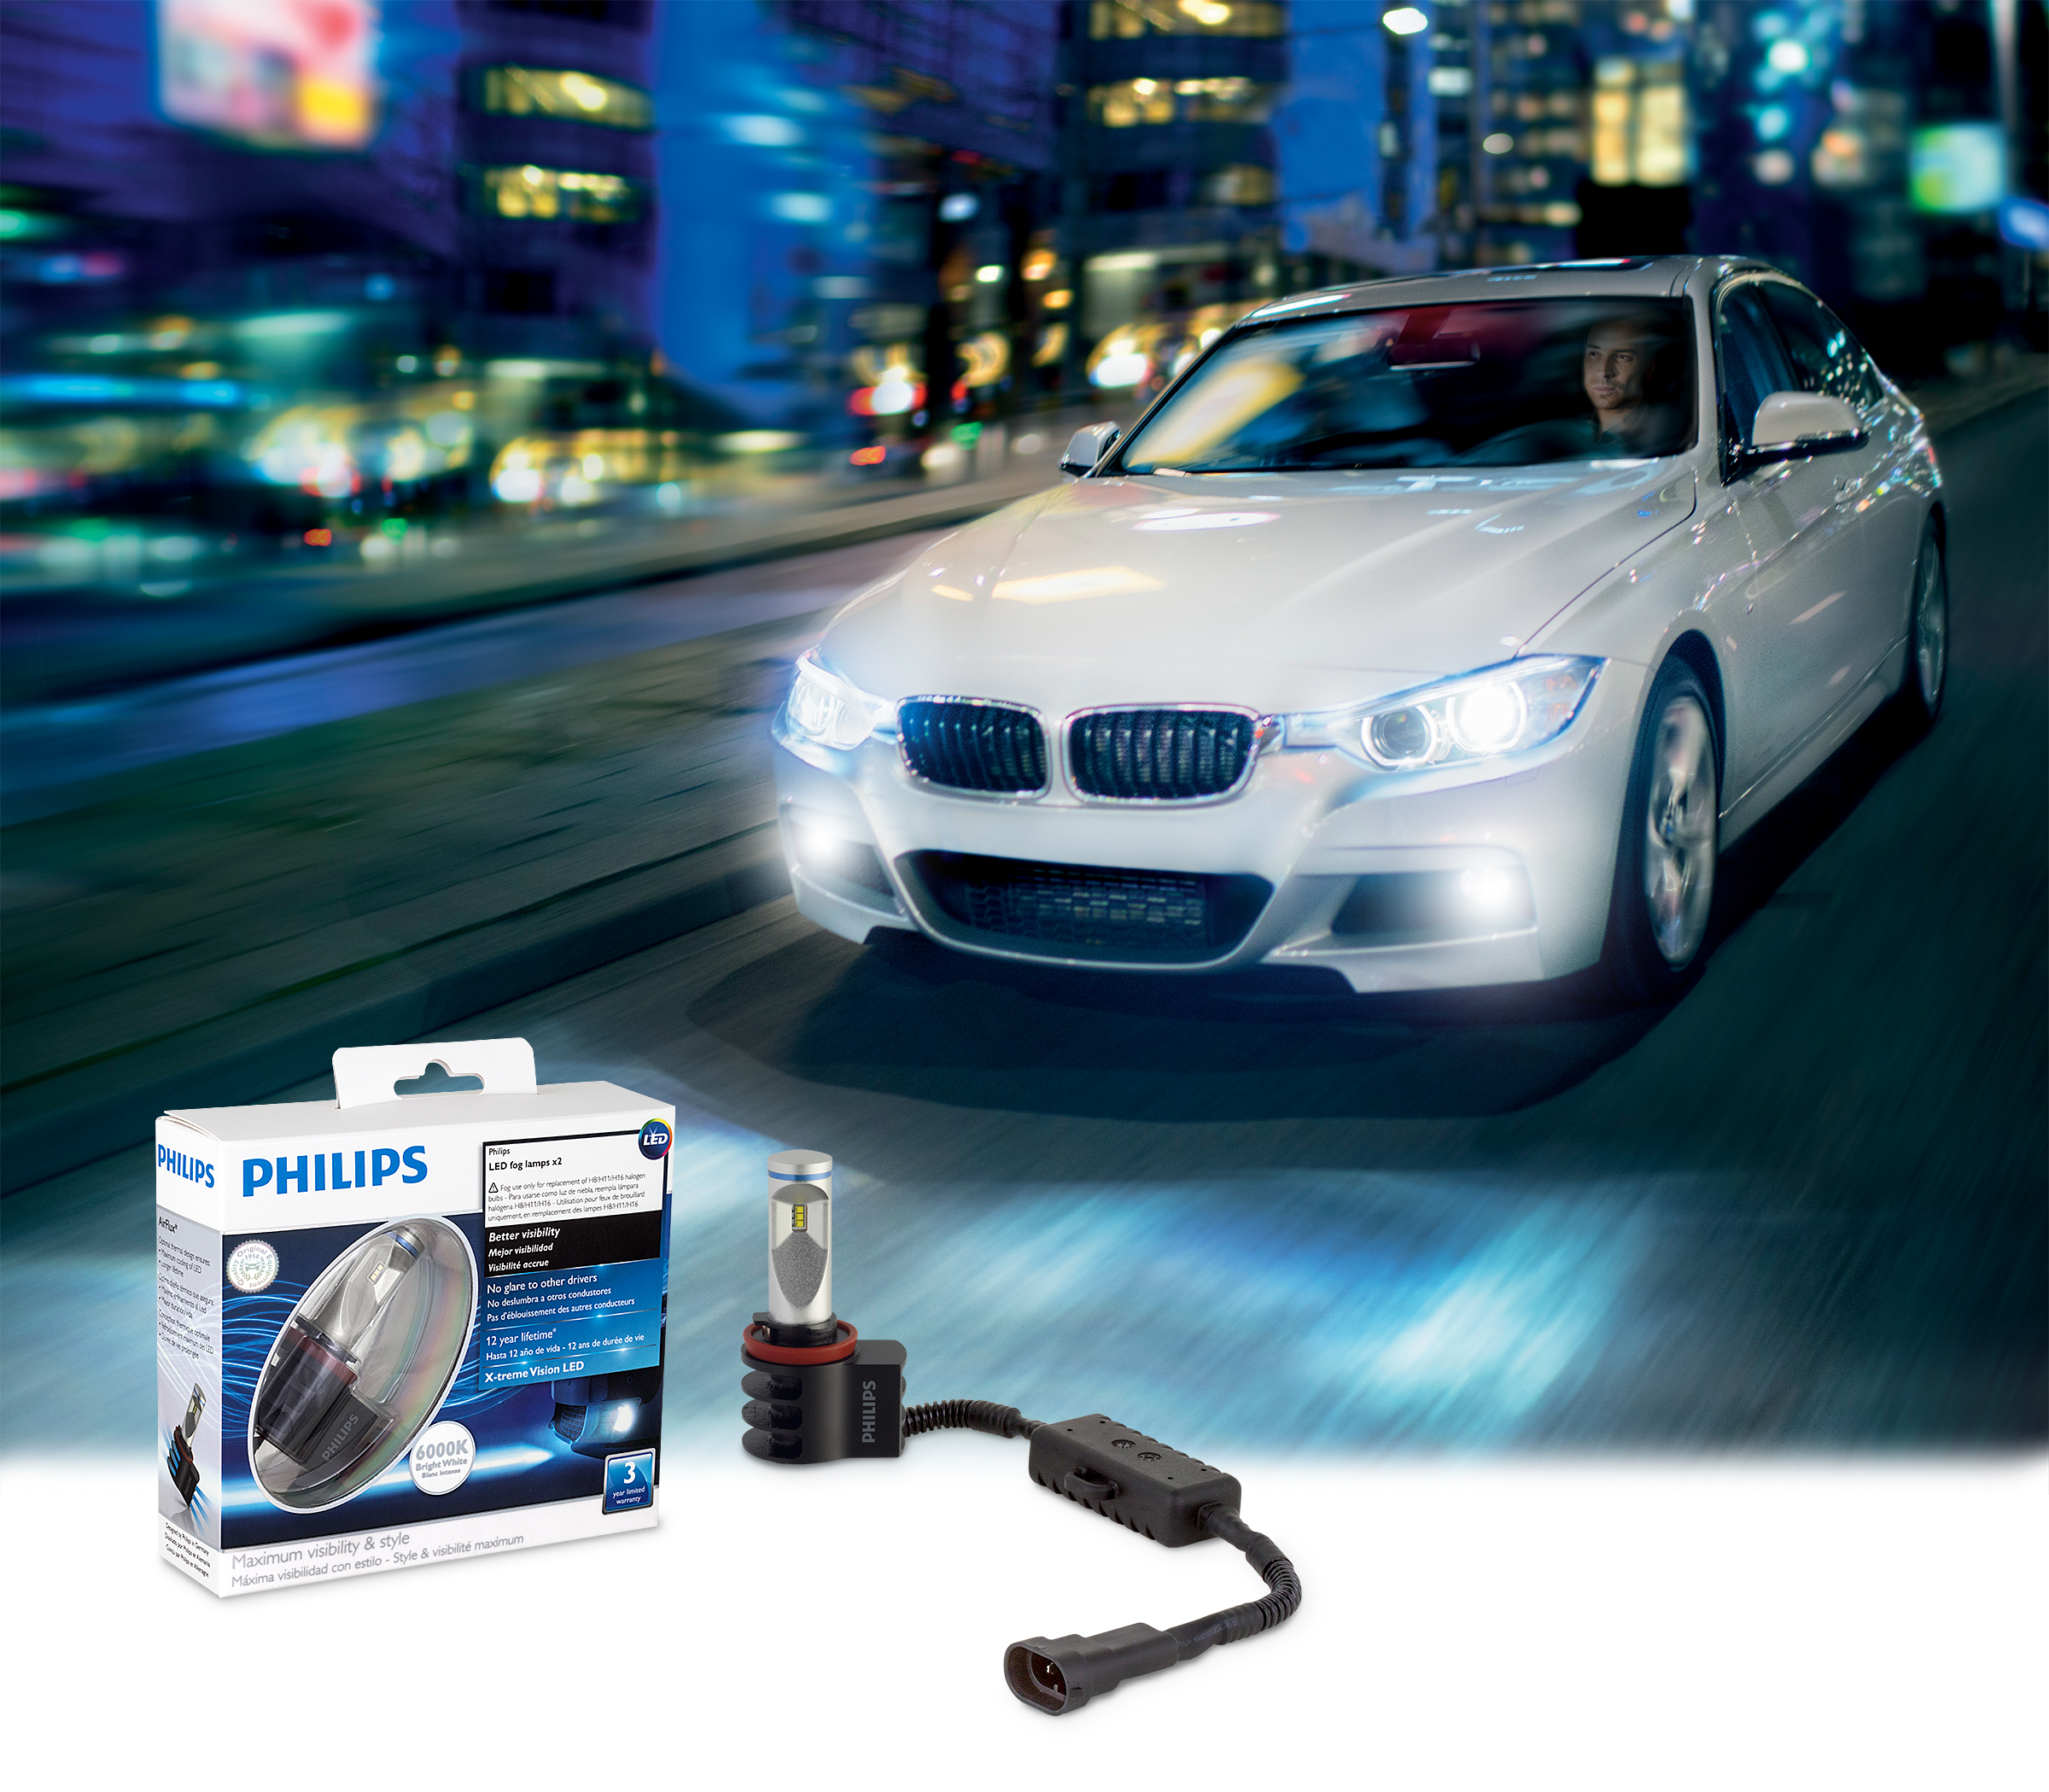 Lumileds Expands Coverage for Philips X-tremeVision Fog Lamp